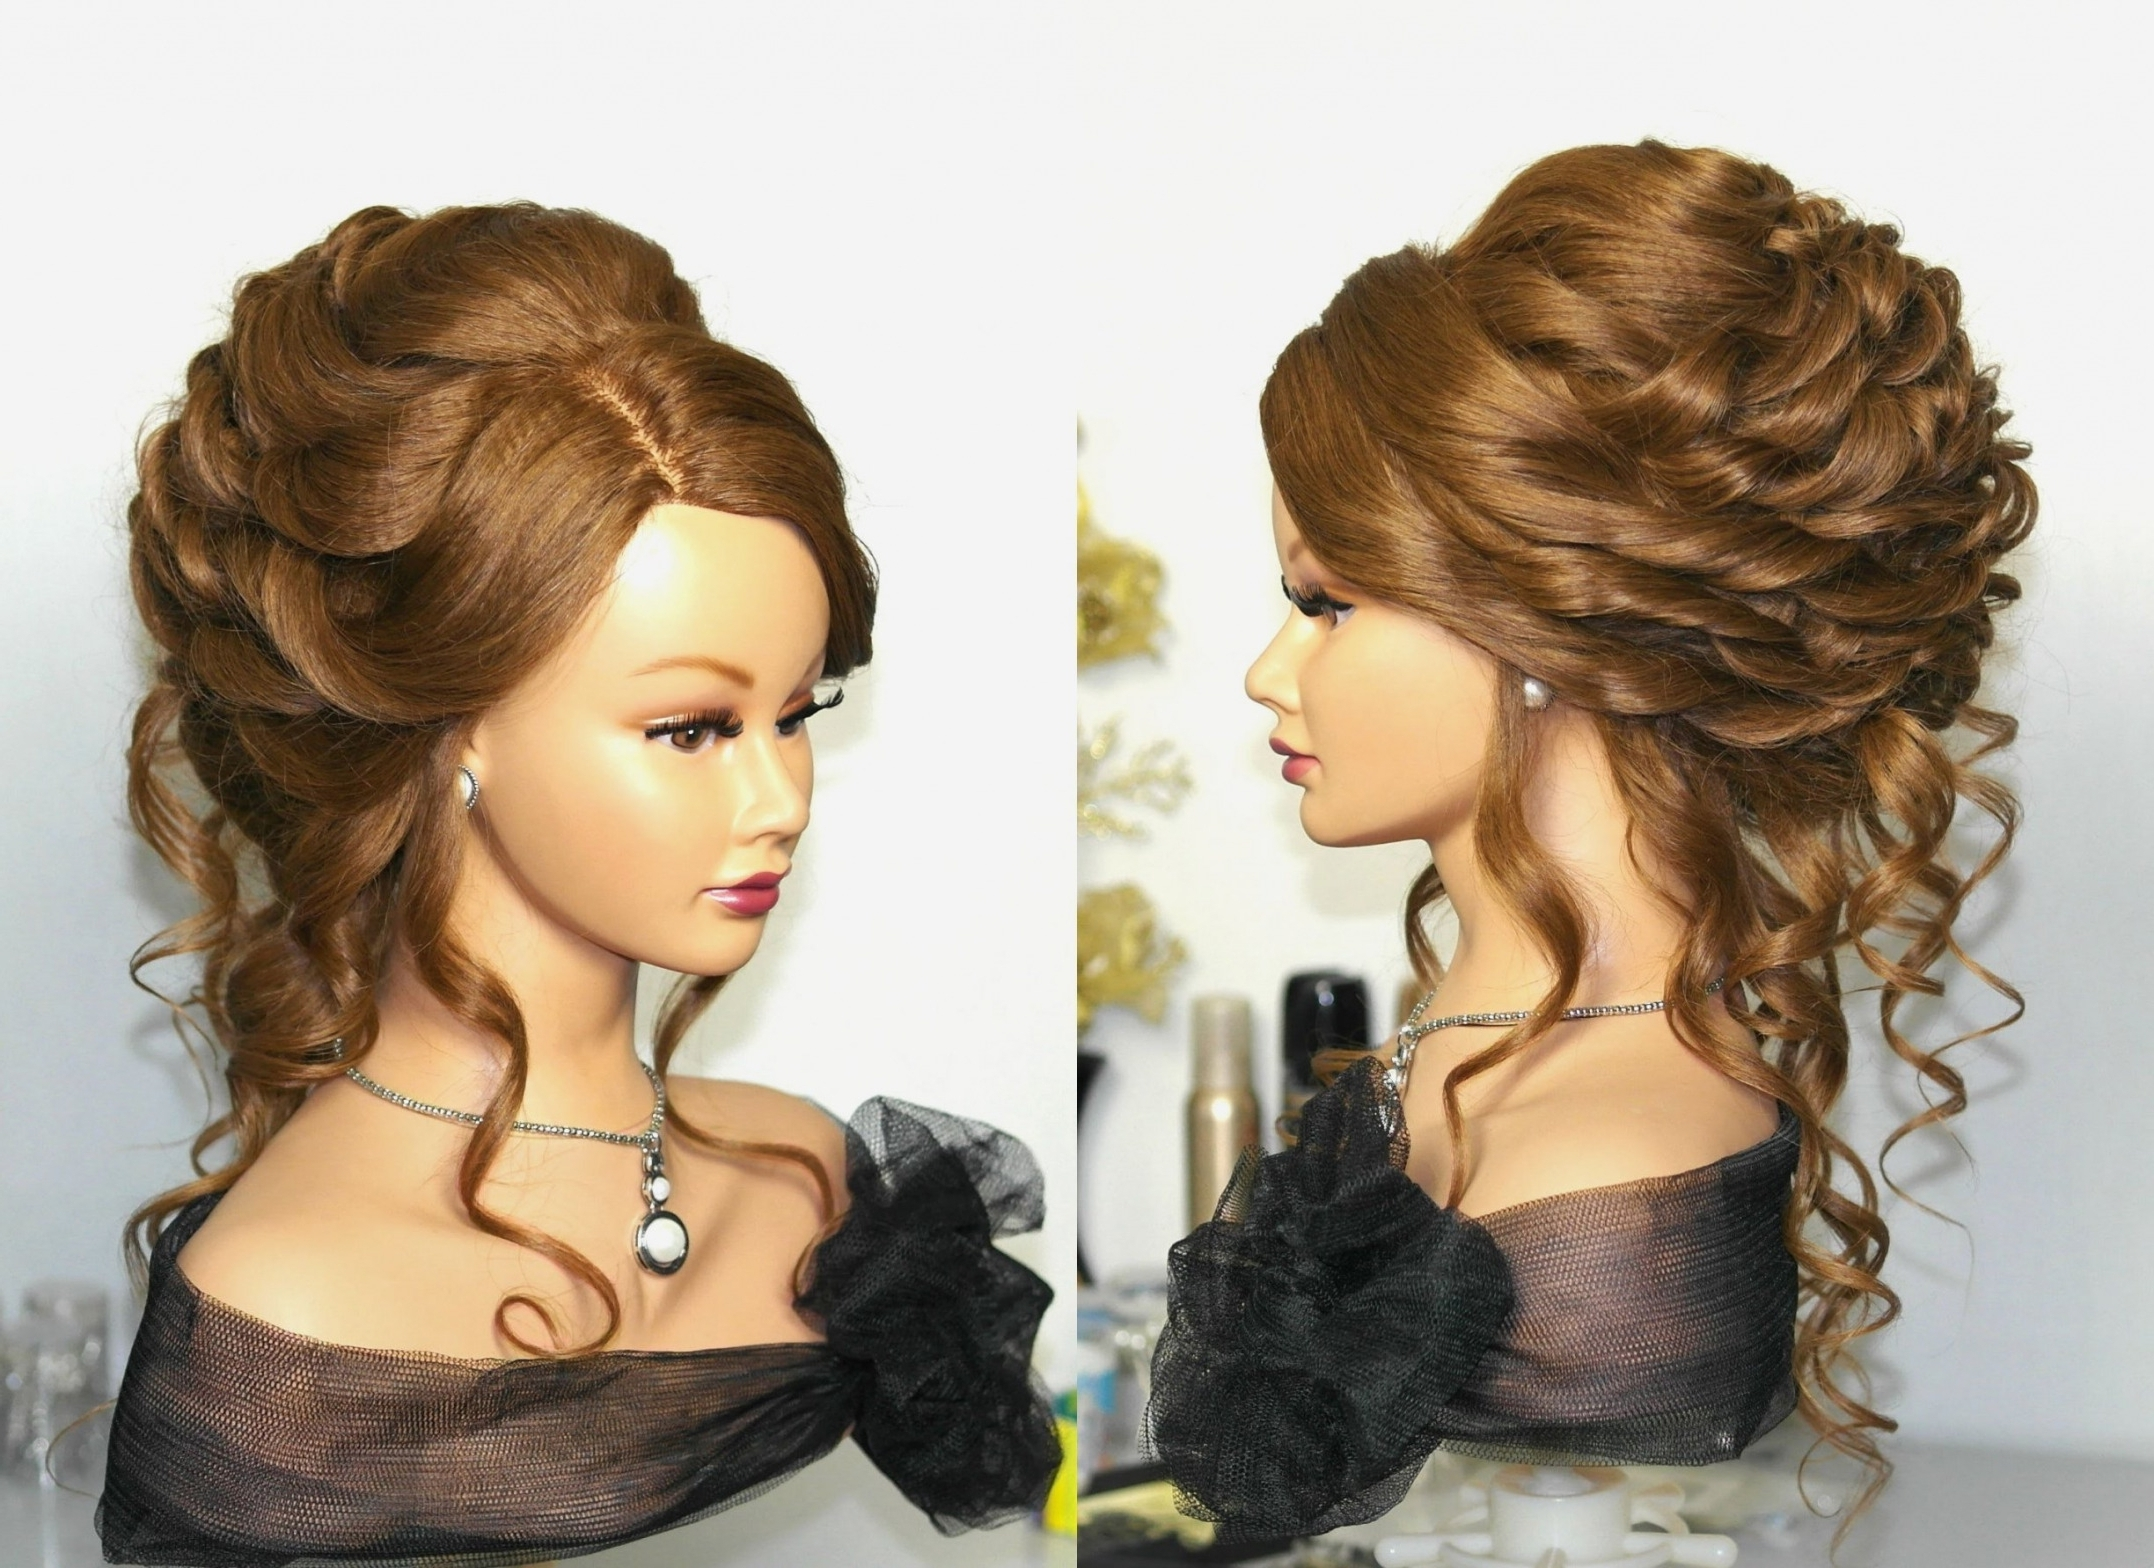 Curly Hairstyles : Wedding Hairstyles For Long Curly Hair Updos With Most Up To Date Wedding Updo Hairstyles For Long Curly Hair (View 3 of 15)